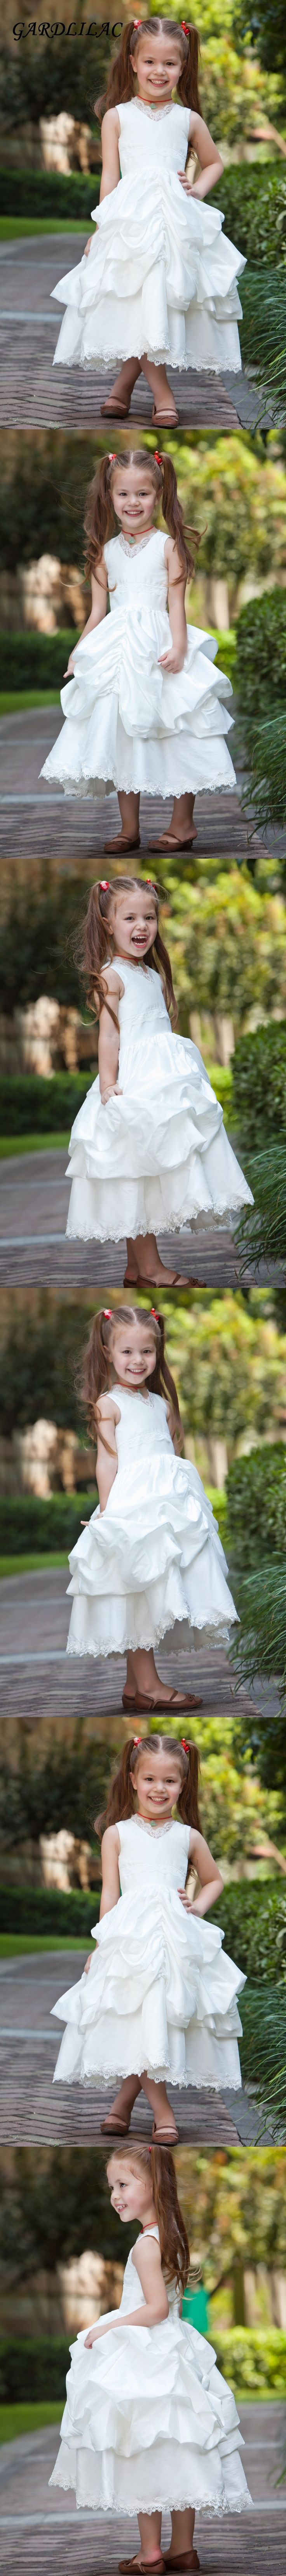 2017 white flower girl dress lace   Tiered  ball gown frist  communion dresses for girls off the shoulder kids frock designs